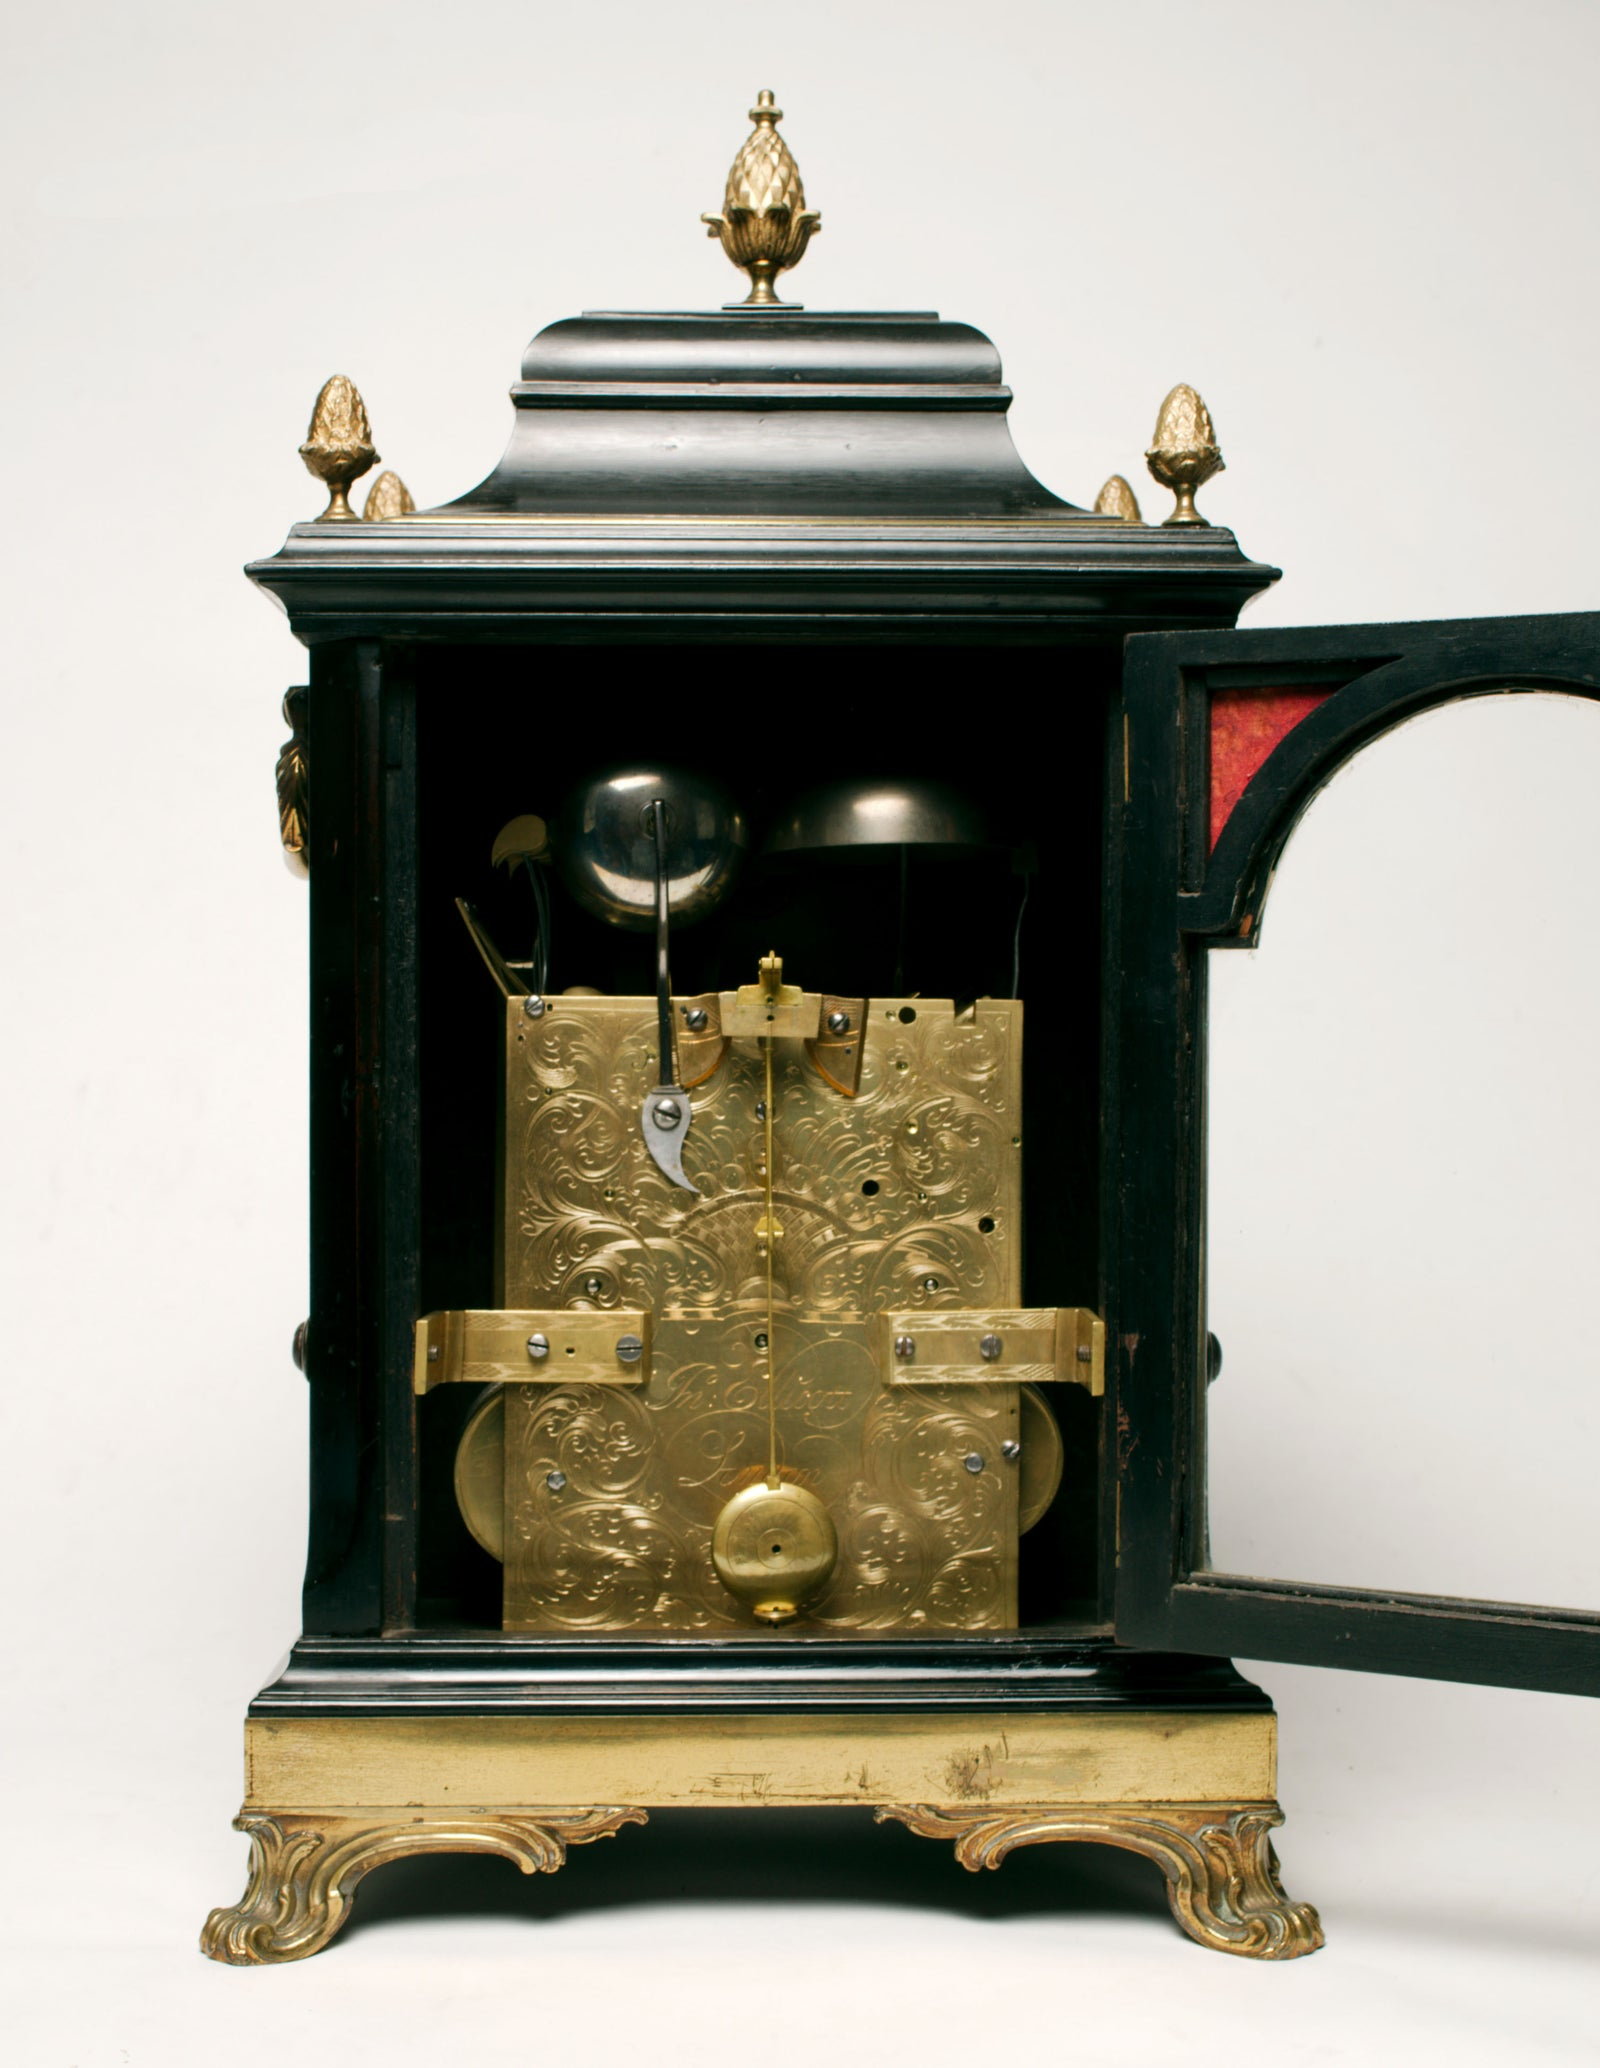 bracket clock by John Ellicott